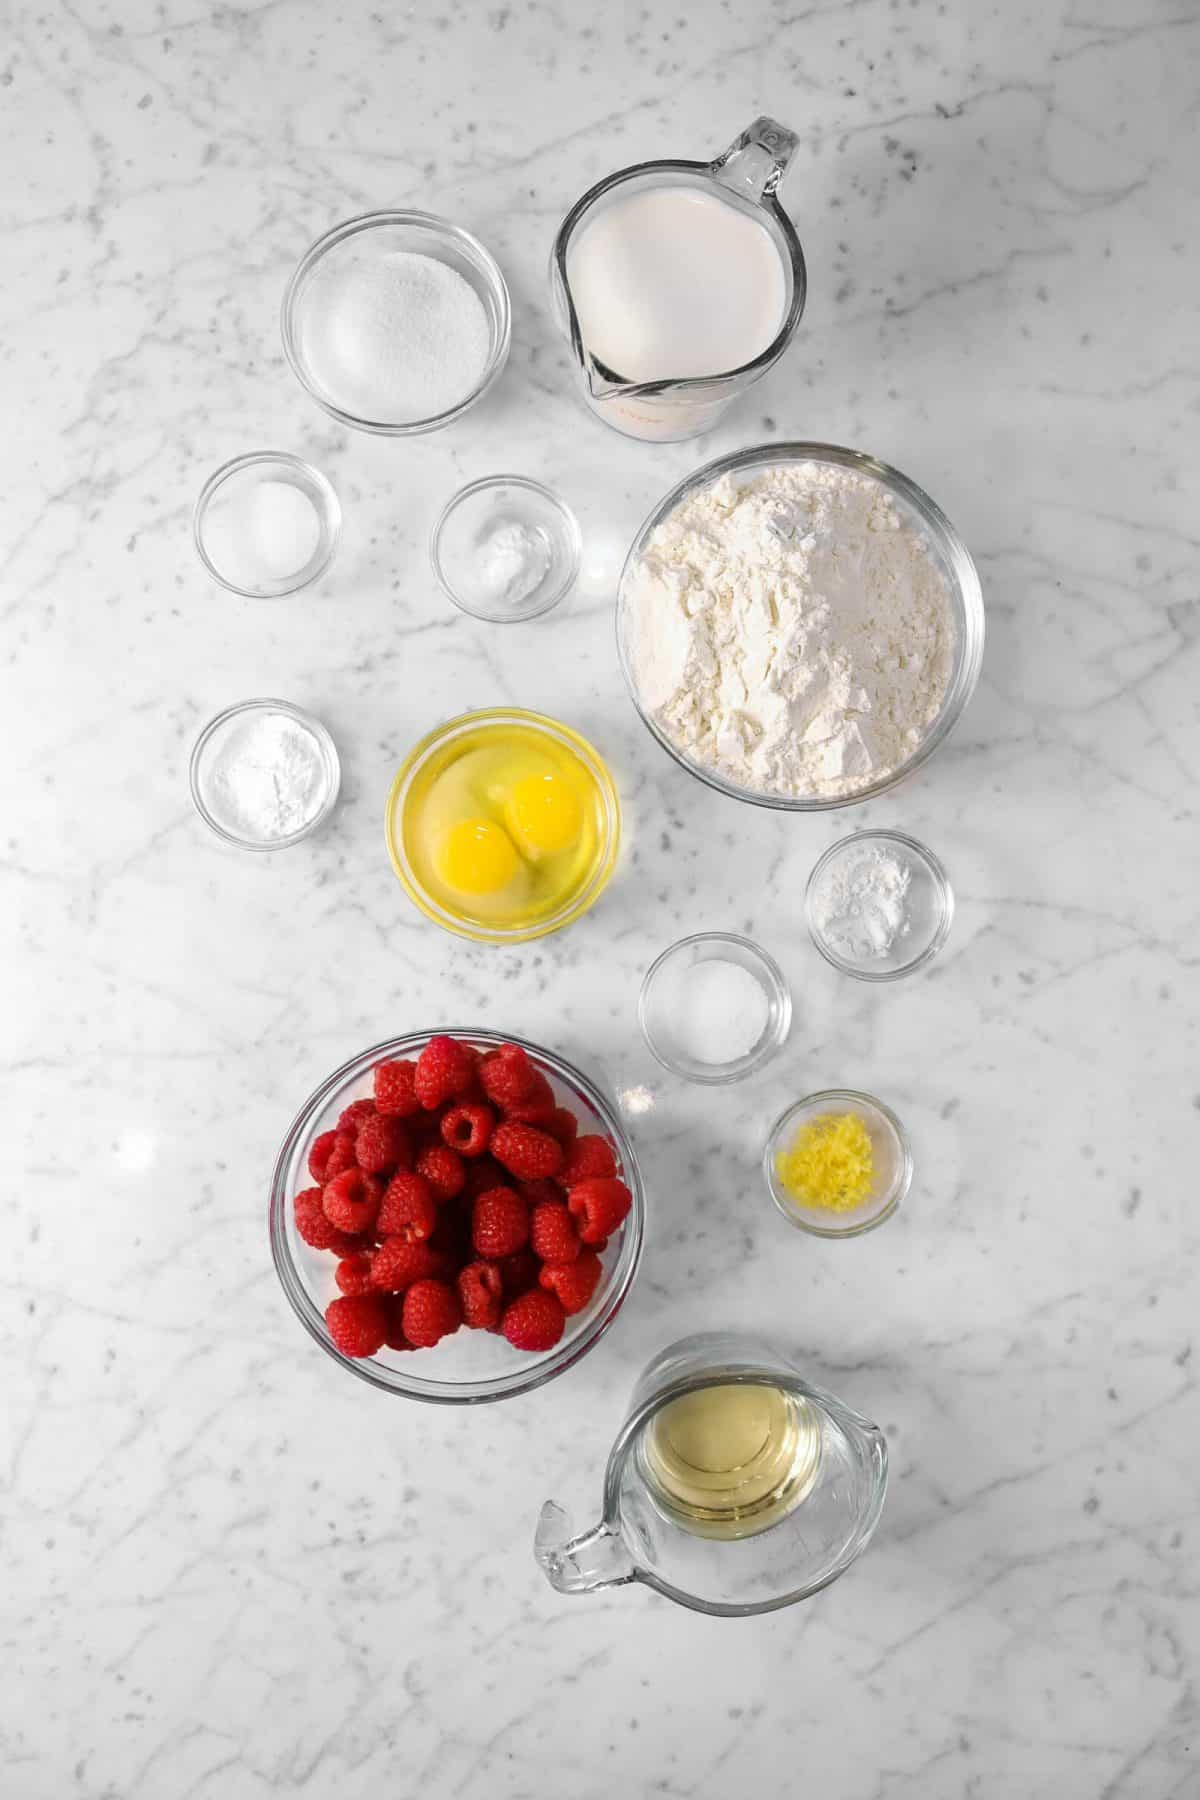 Ingredients for raspberry muffins on a marble table